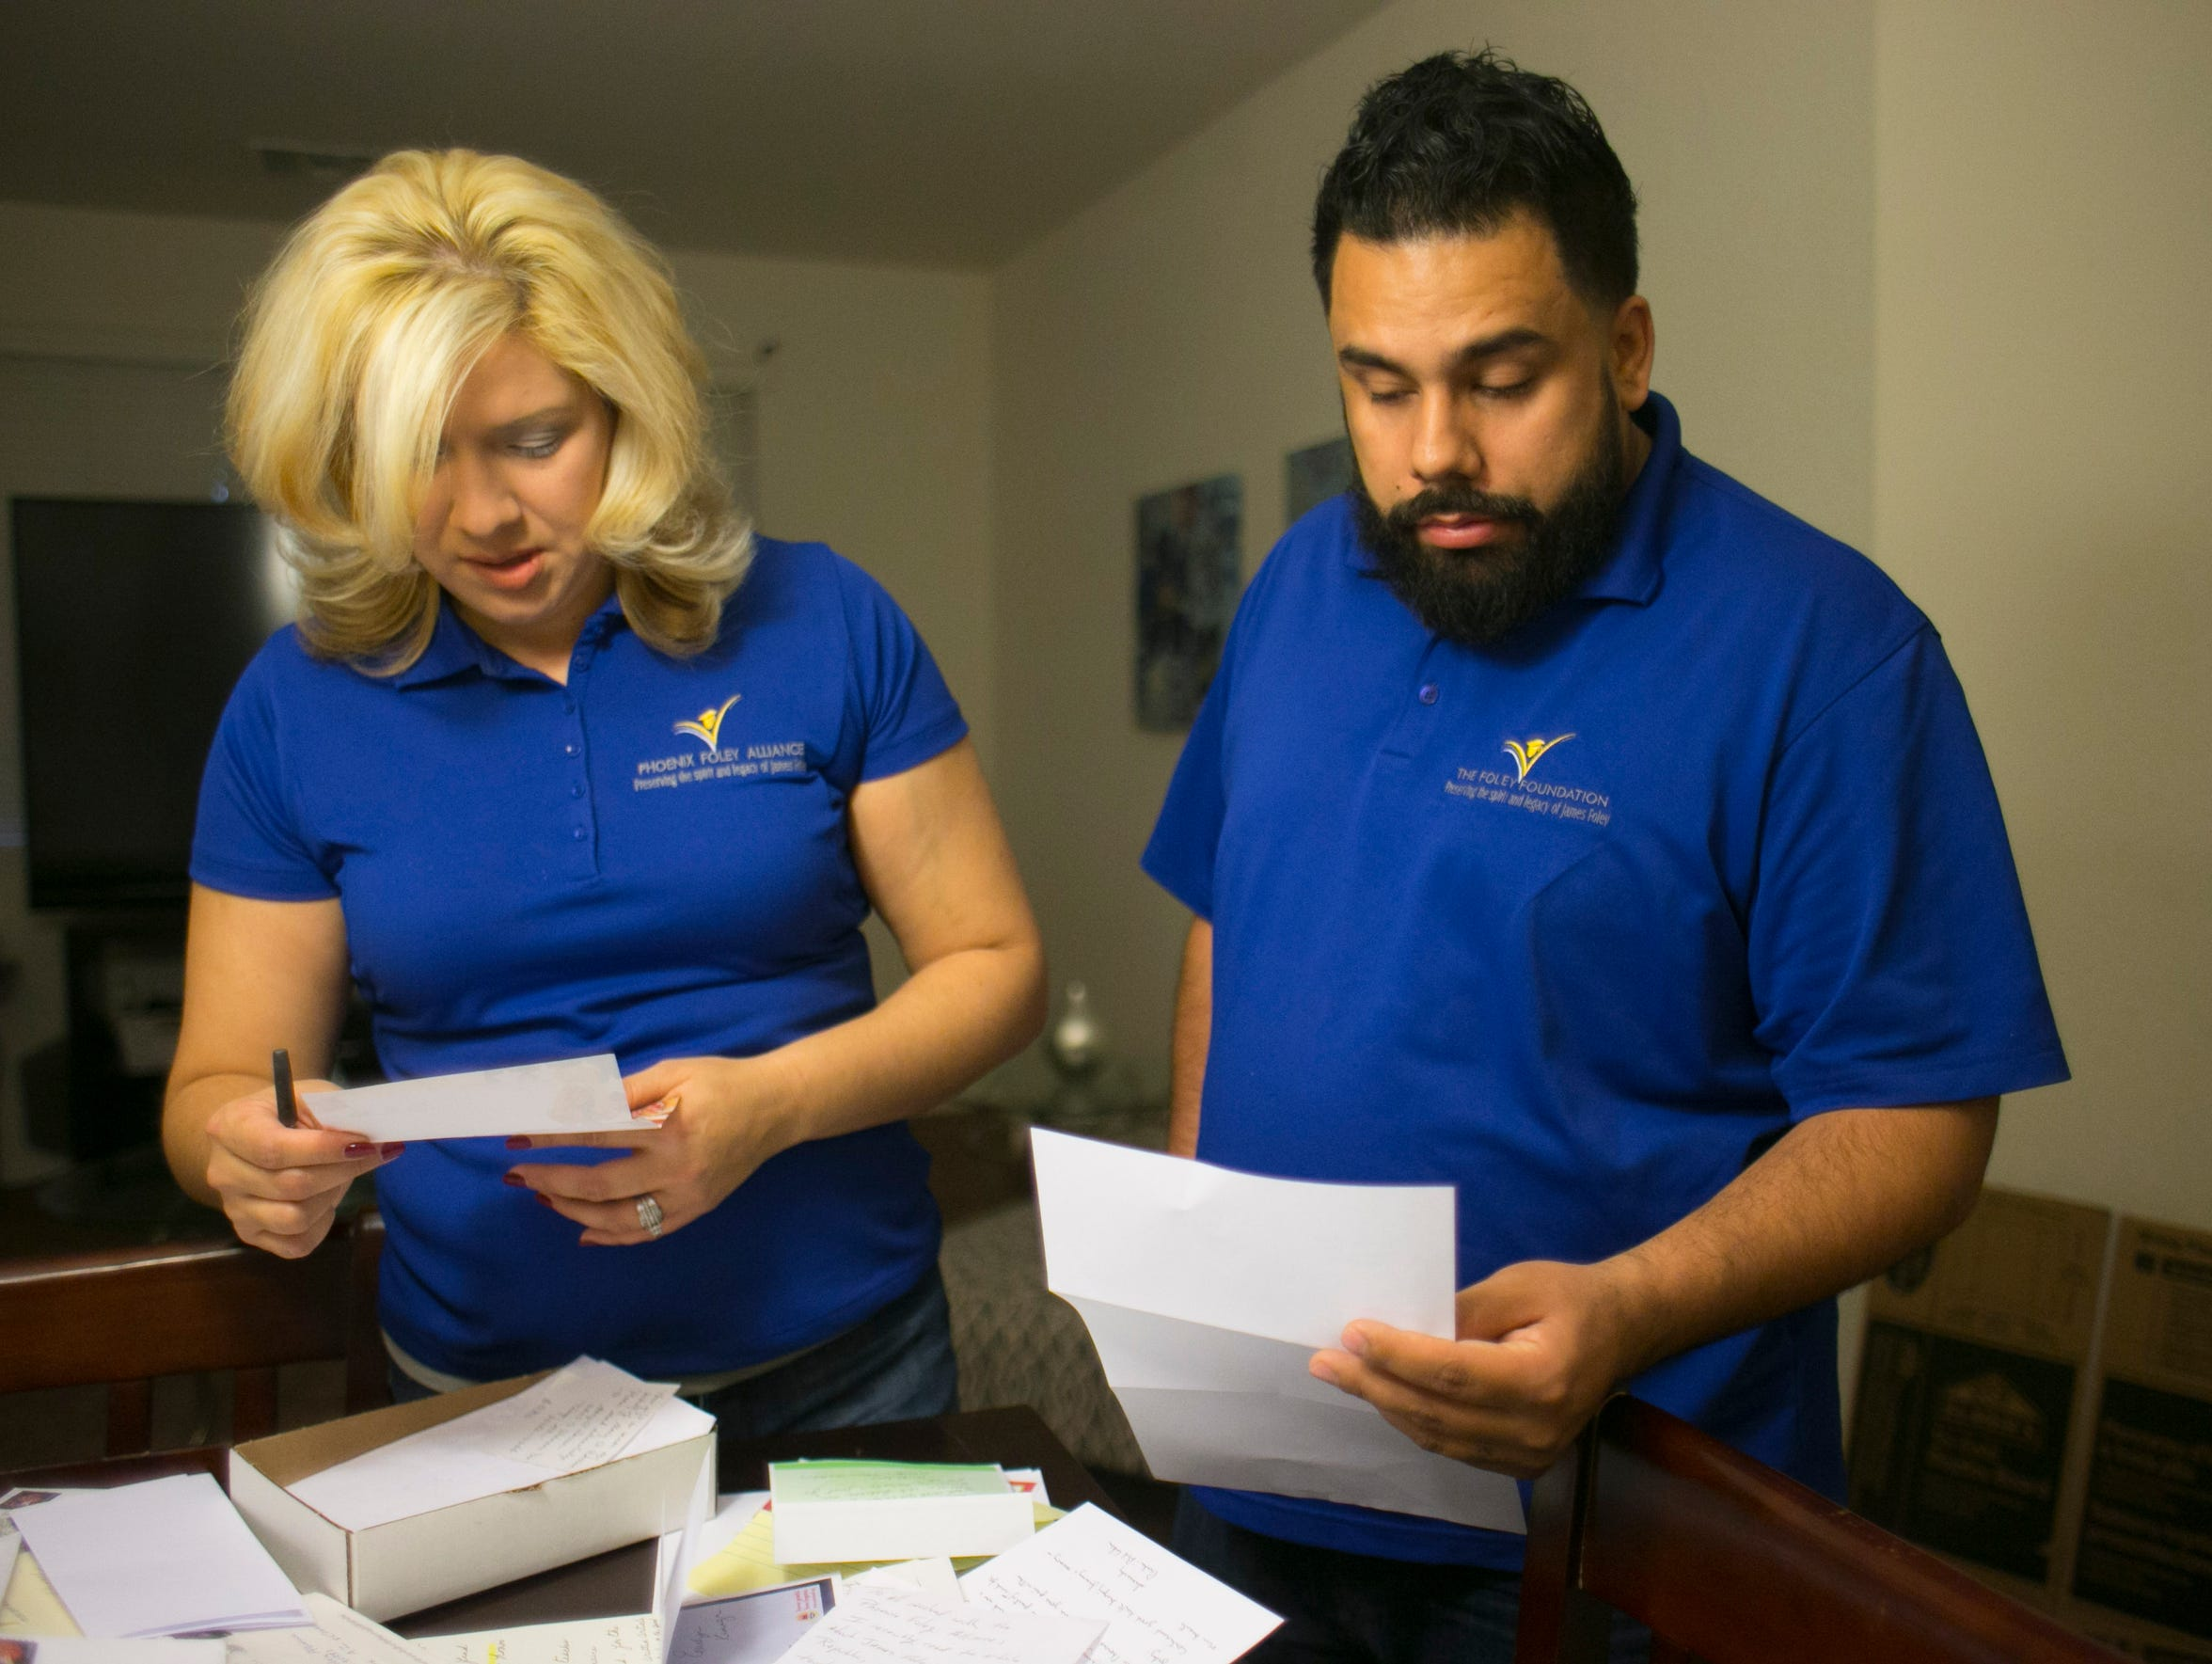 Kristen Martinez and Eddie Martinez look at letters that people sent them with checks to support their foundation, the Phoenix Foley Alliance, in December 2015.